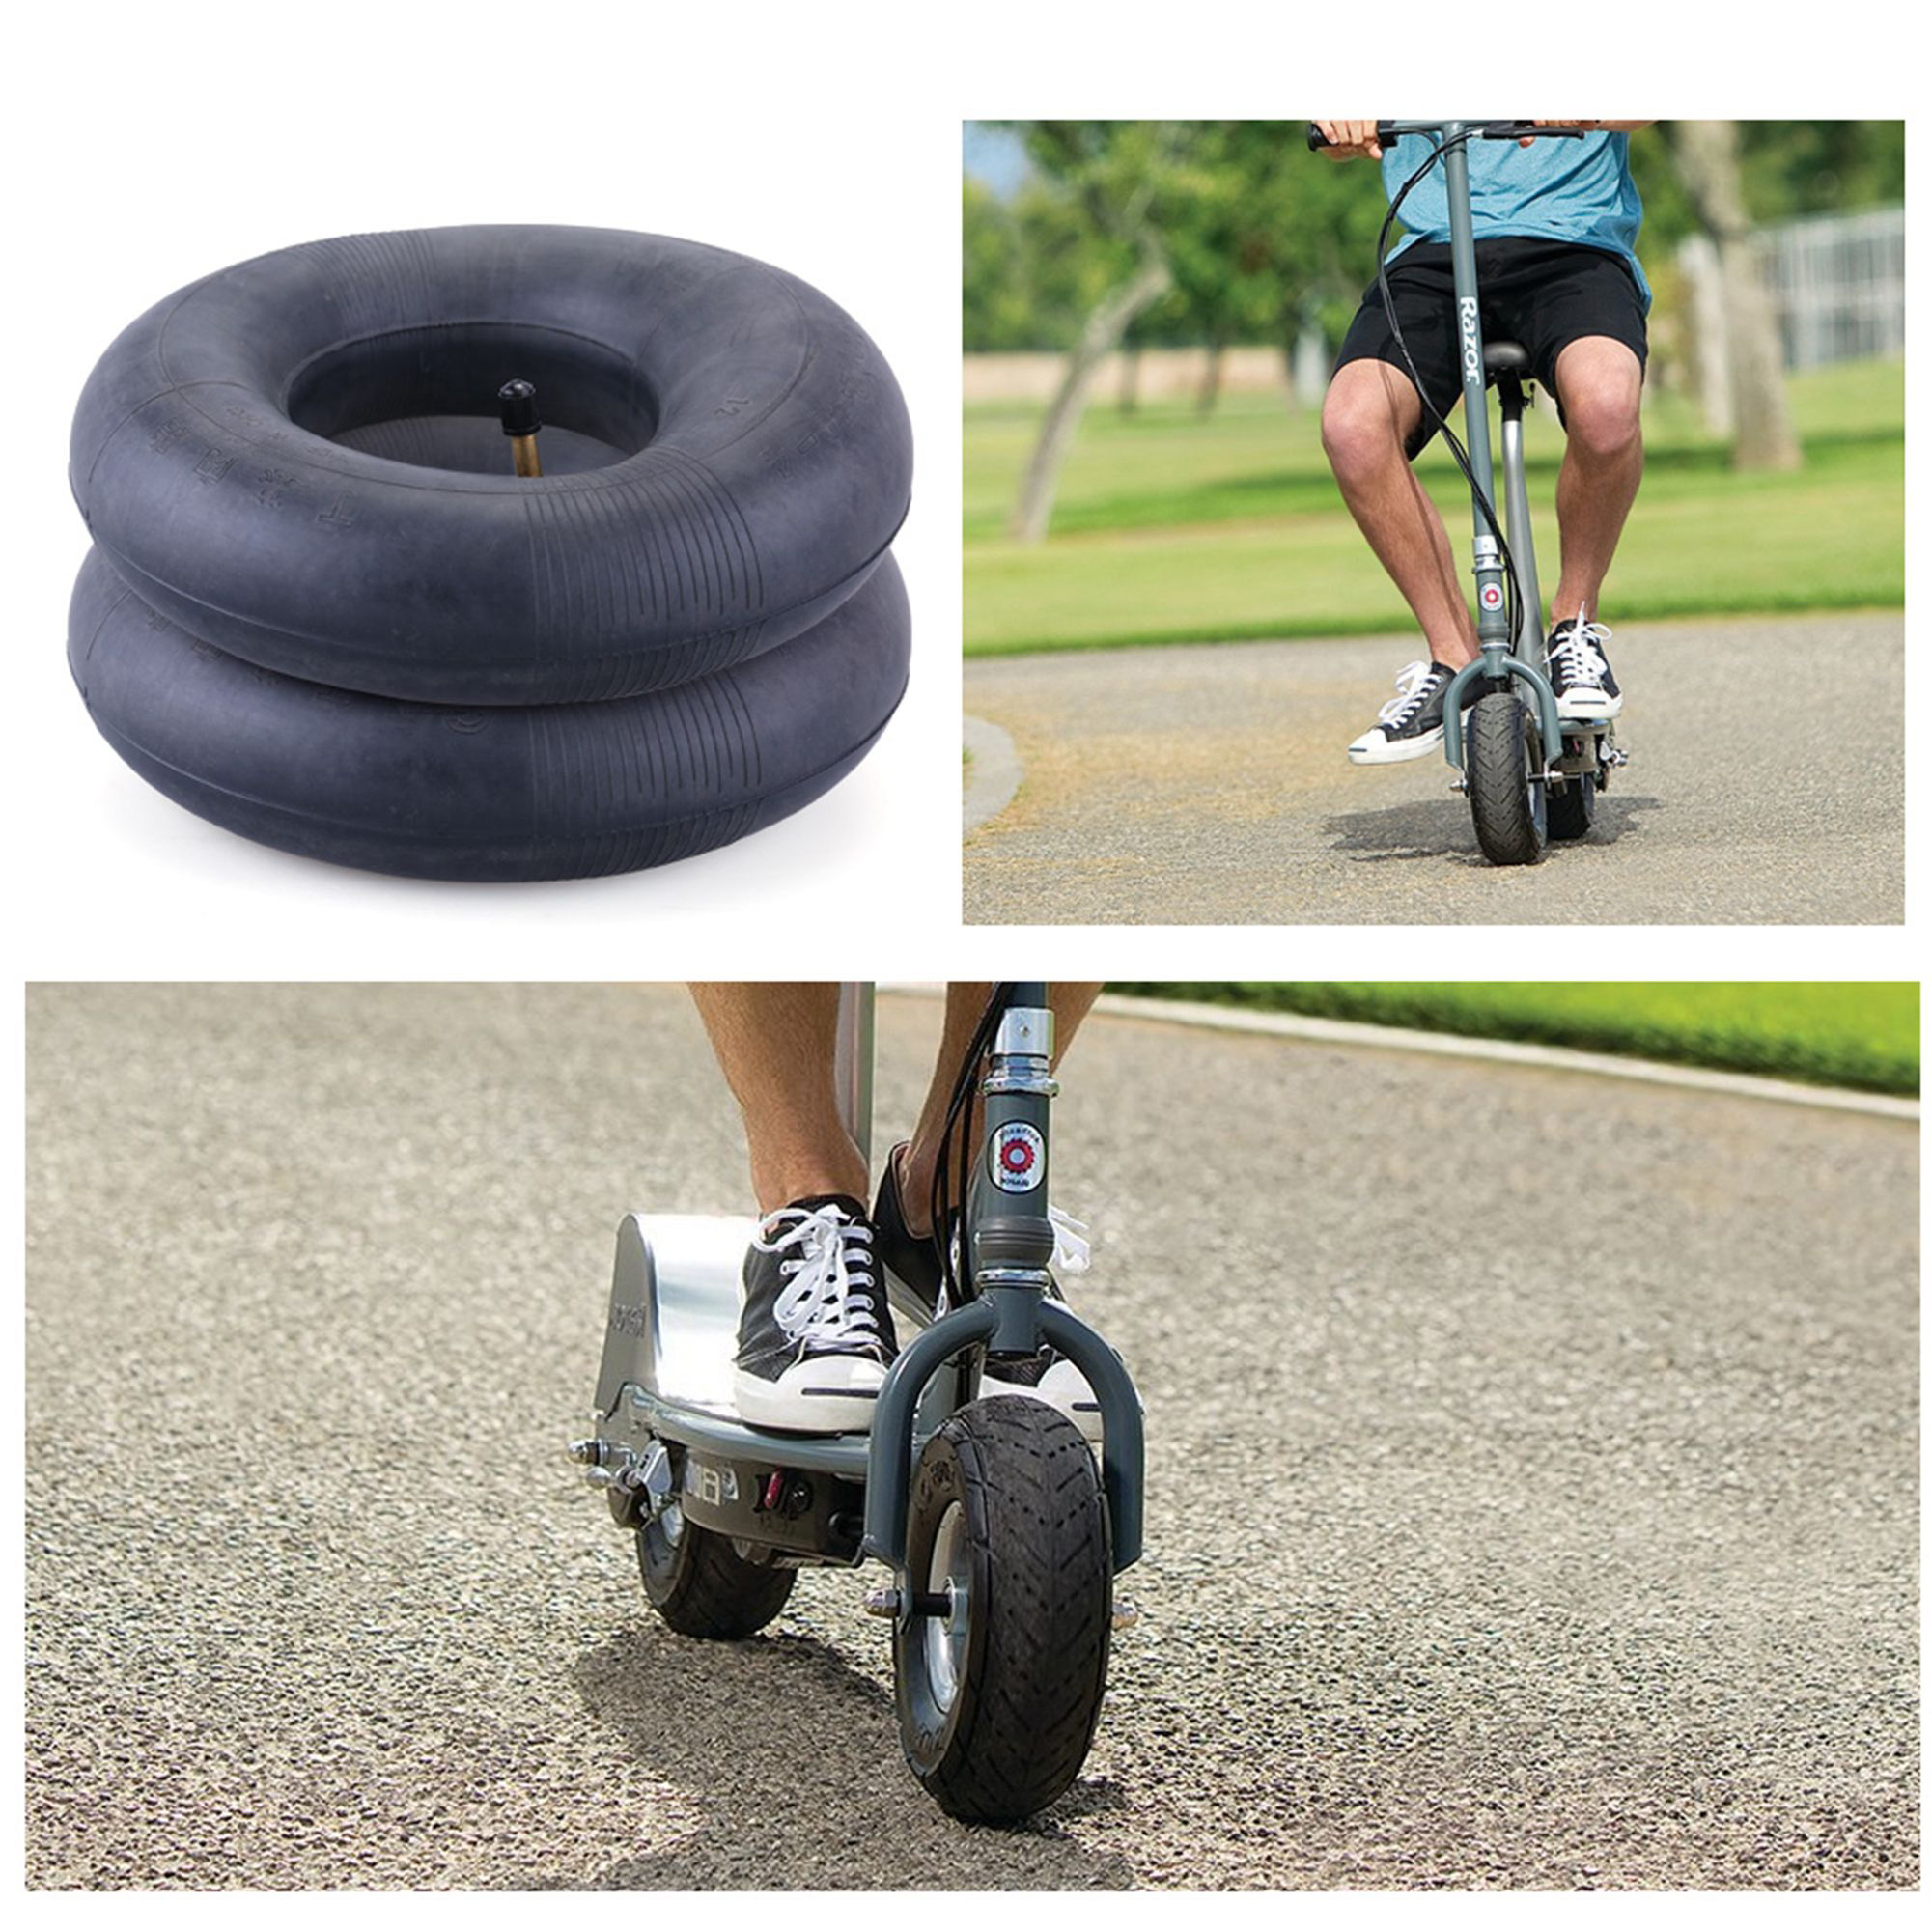 Lawn Mowers Utility Cart LotFancy 2 Packs of 2.80//2.50-4 Inner Tube for Hand Trucks Replacement 2.80-4 2.50-4 Tire Inner Tube with TR87 Bent Valve Stem Dollys Wheelbarrows Scooters